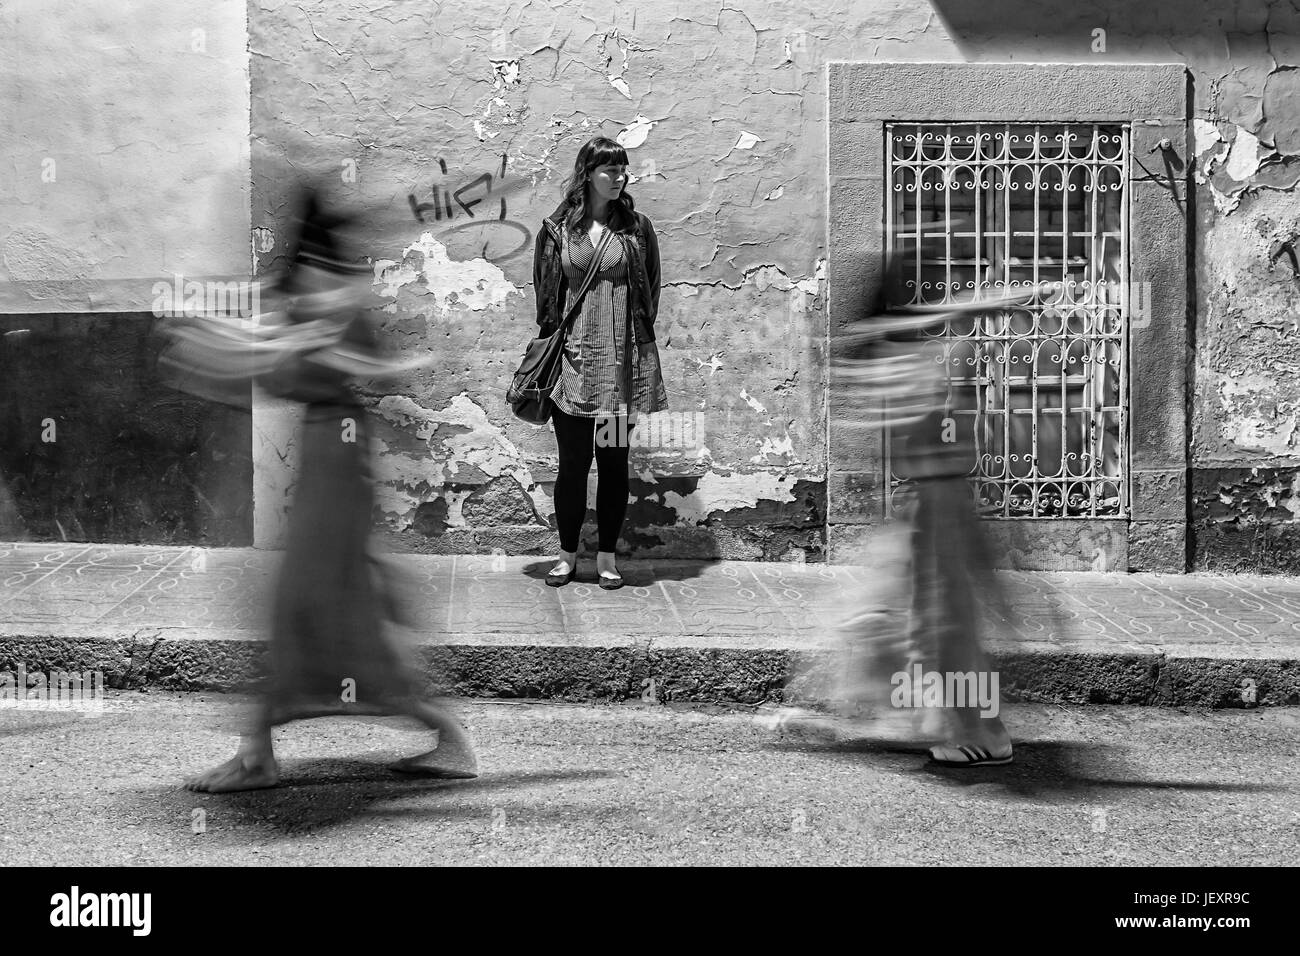 Linares, jaen province, SPAIN - March 16, 2014: Girl still watching how they spend nazarenos carrying a cross at - Stock Image